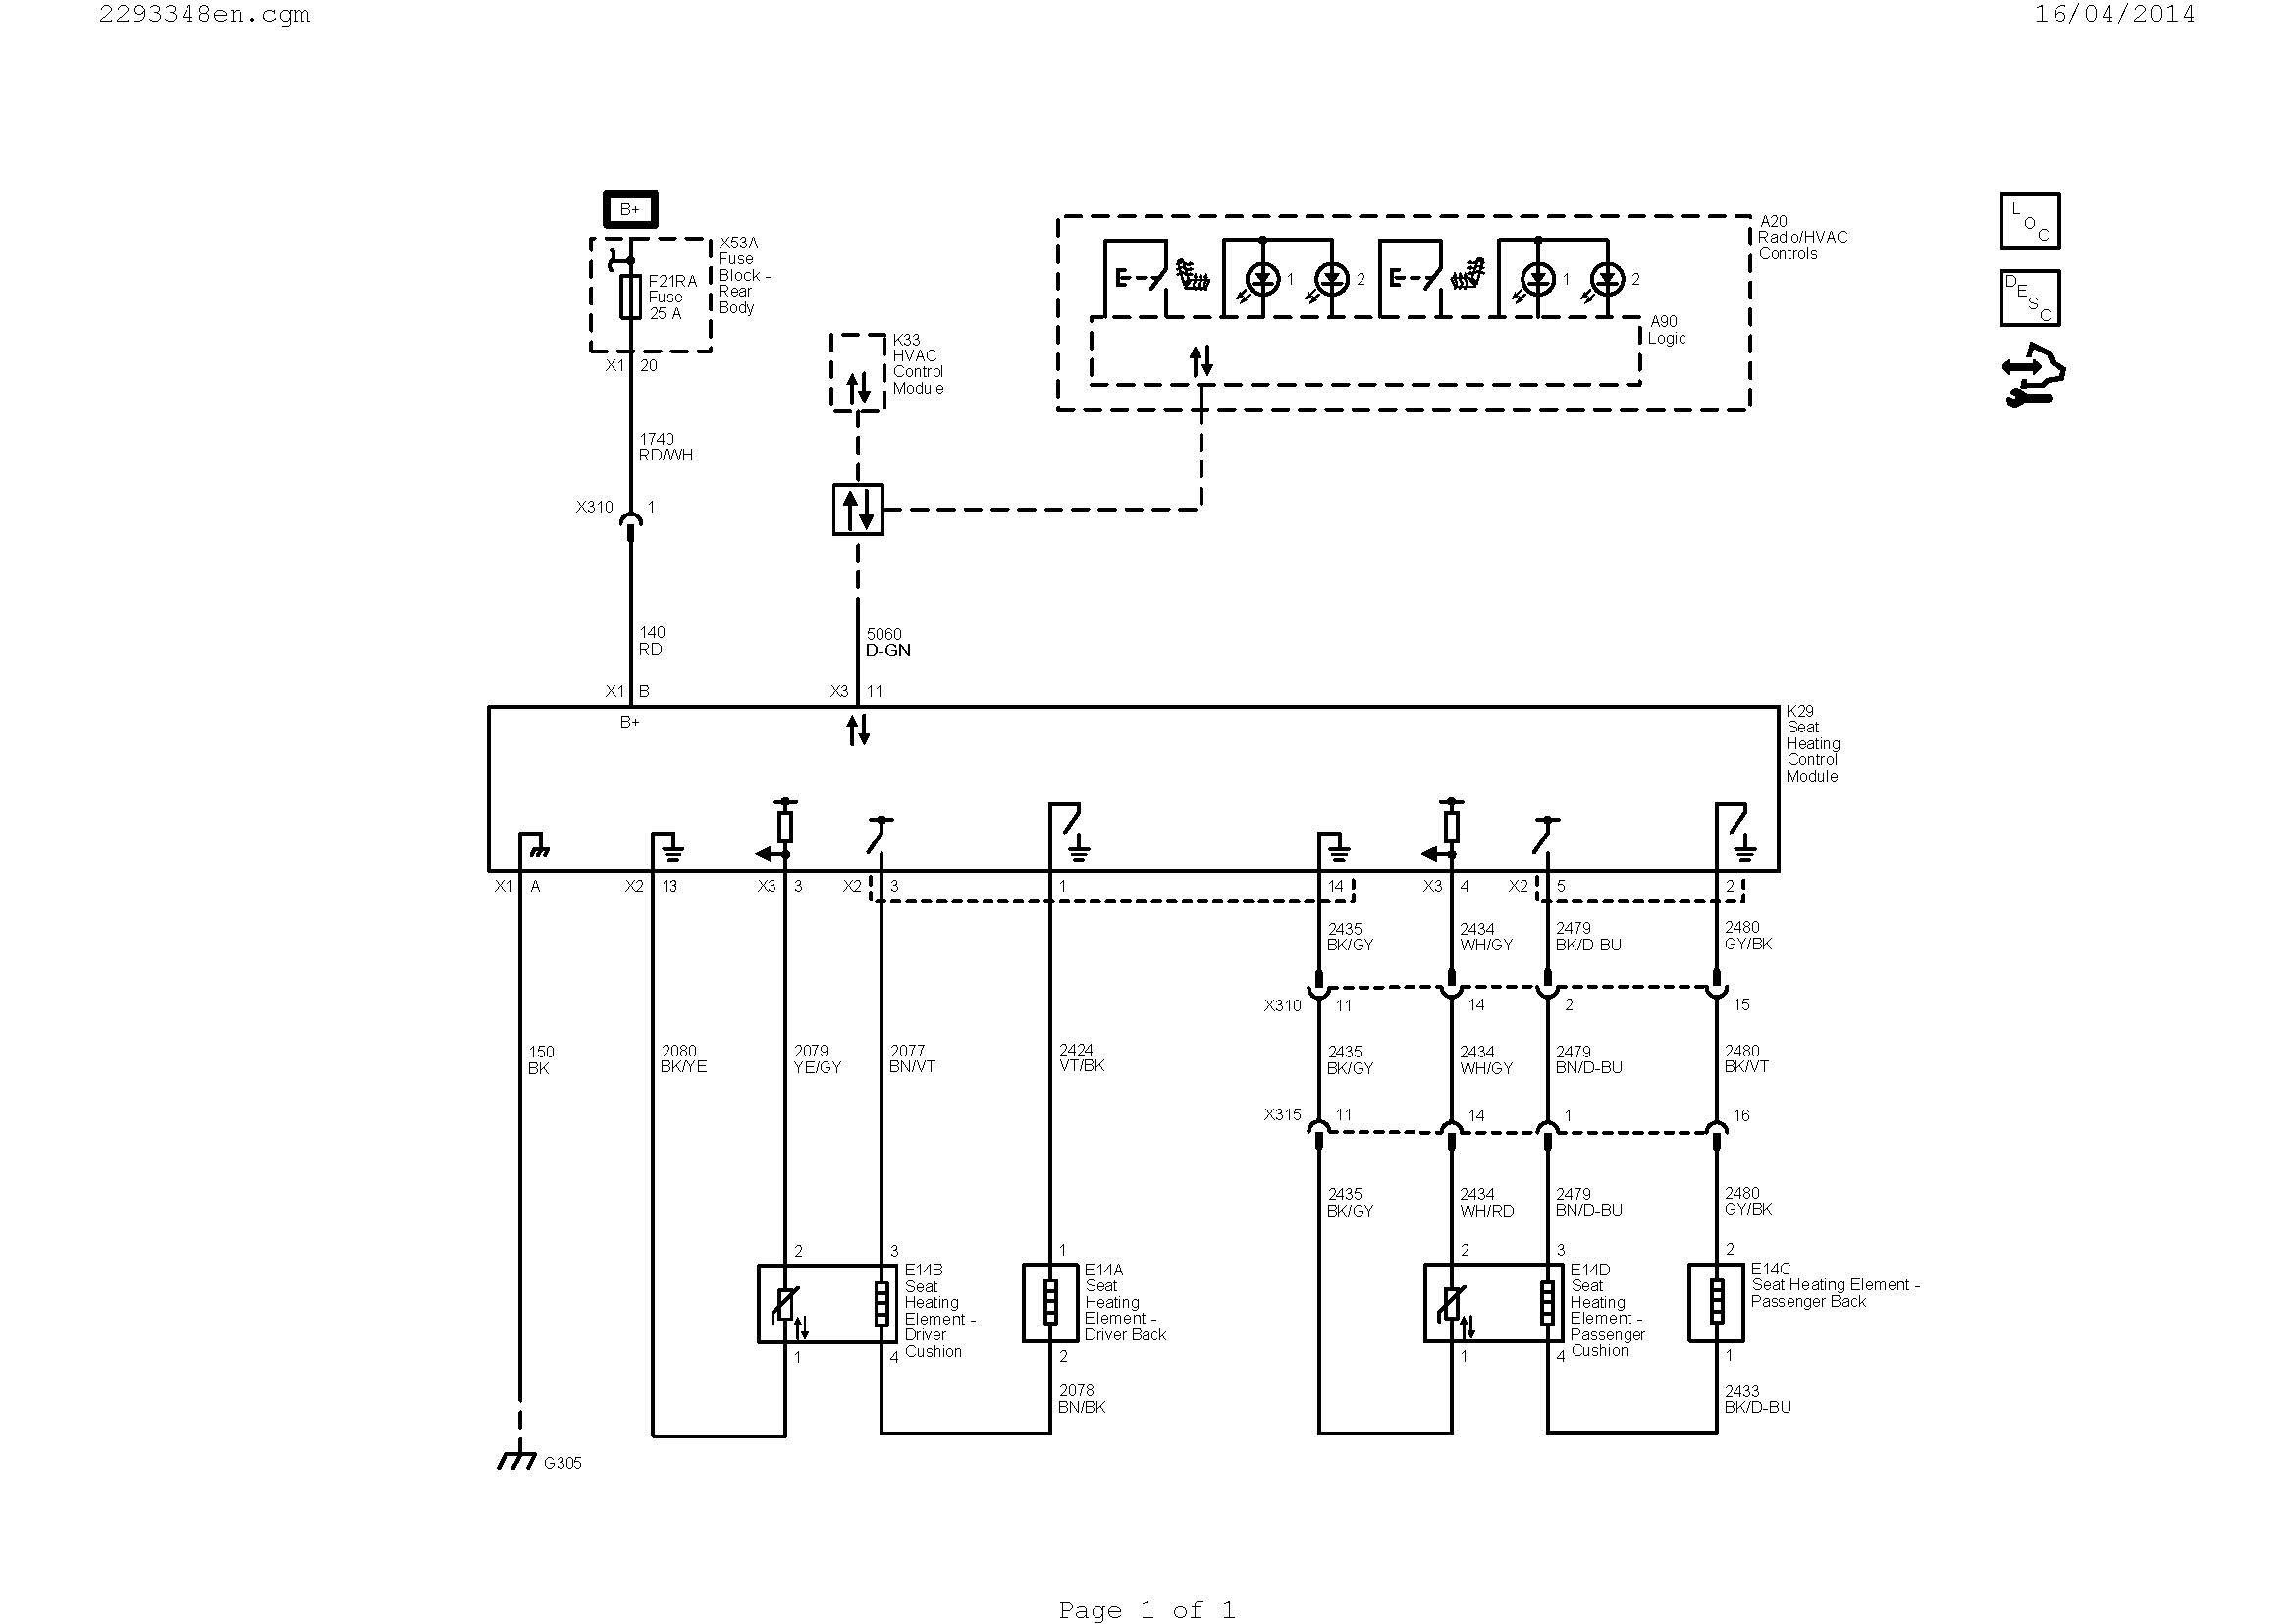 How to Read A Wiring Diagram for Hvac New tower Ac Wiring Diagram New Hvac Diagram